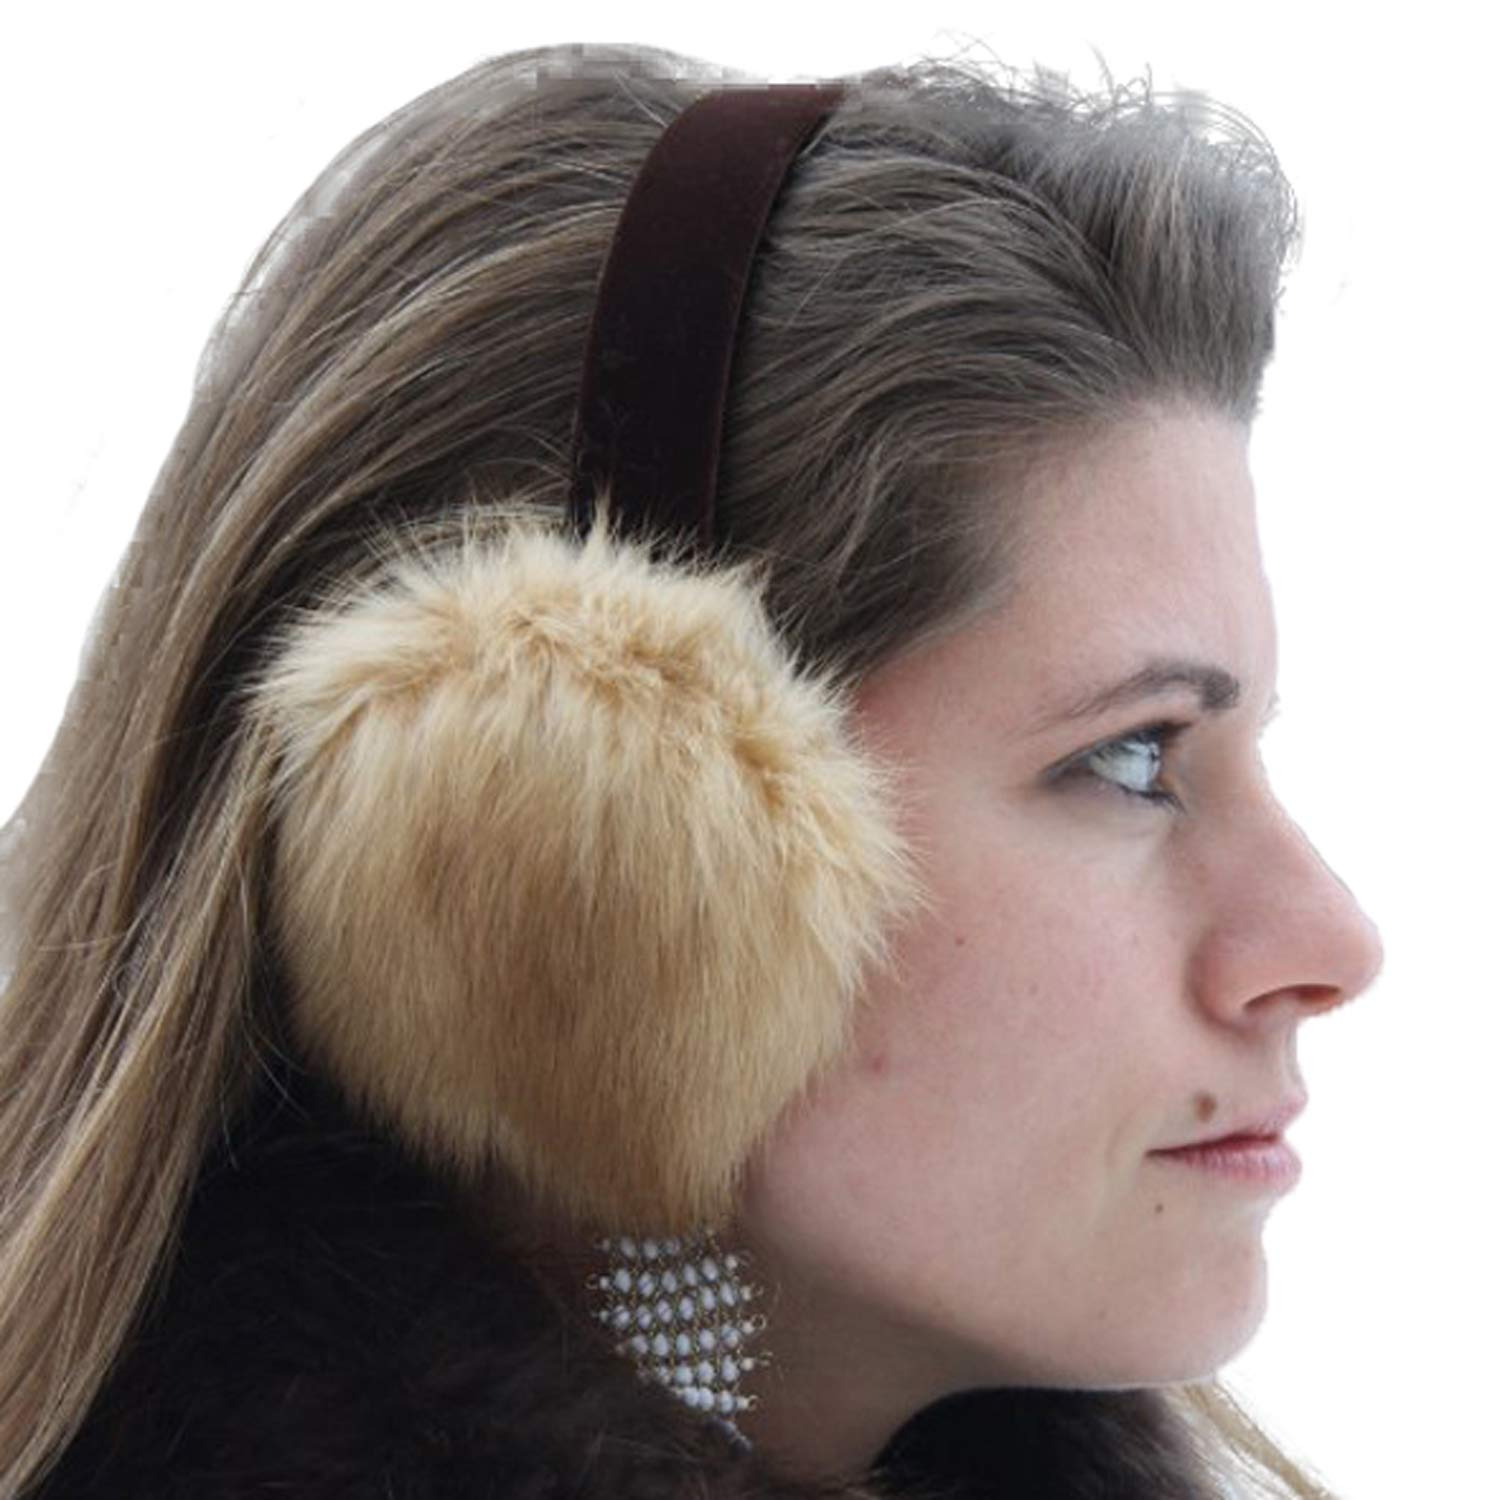 Glacier Wear Golden Sable Ear Muffs - mff1251